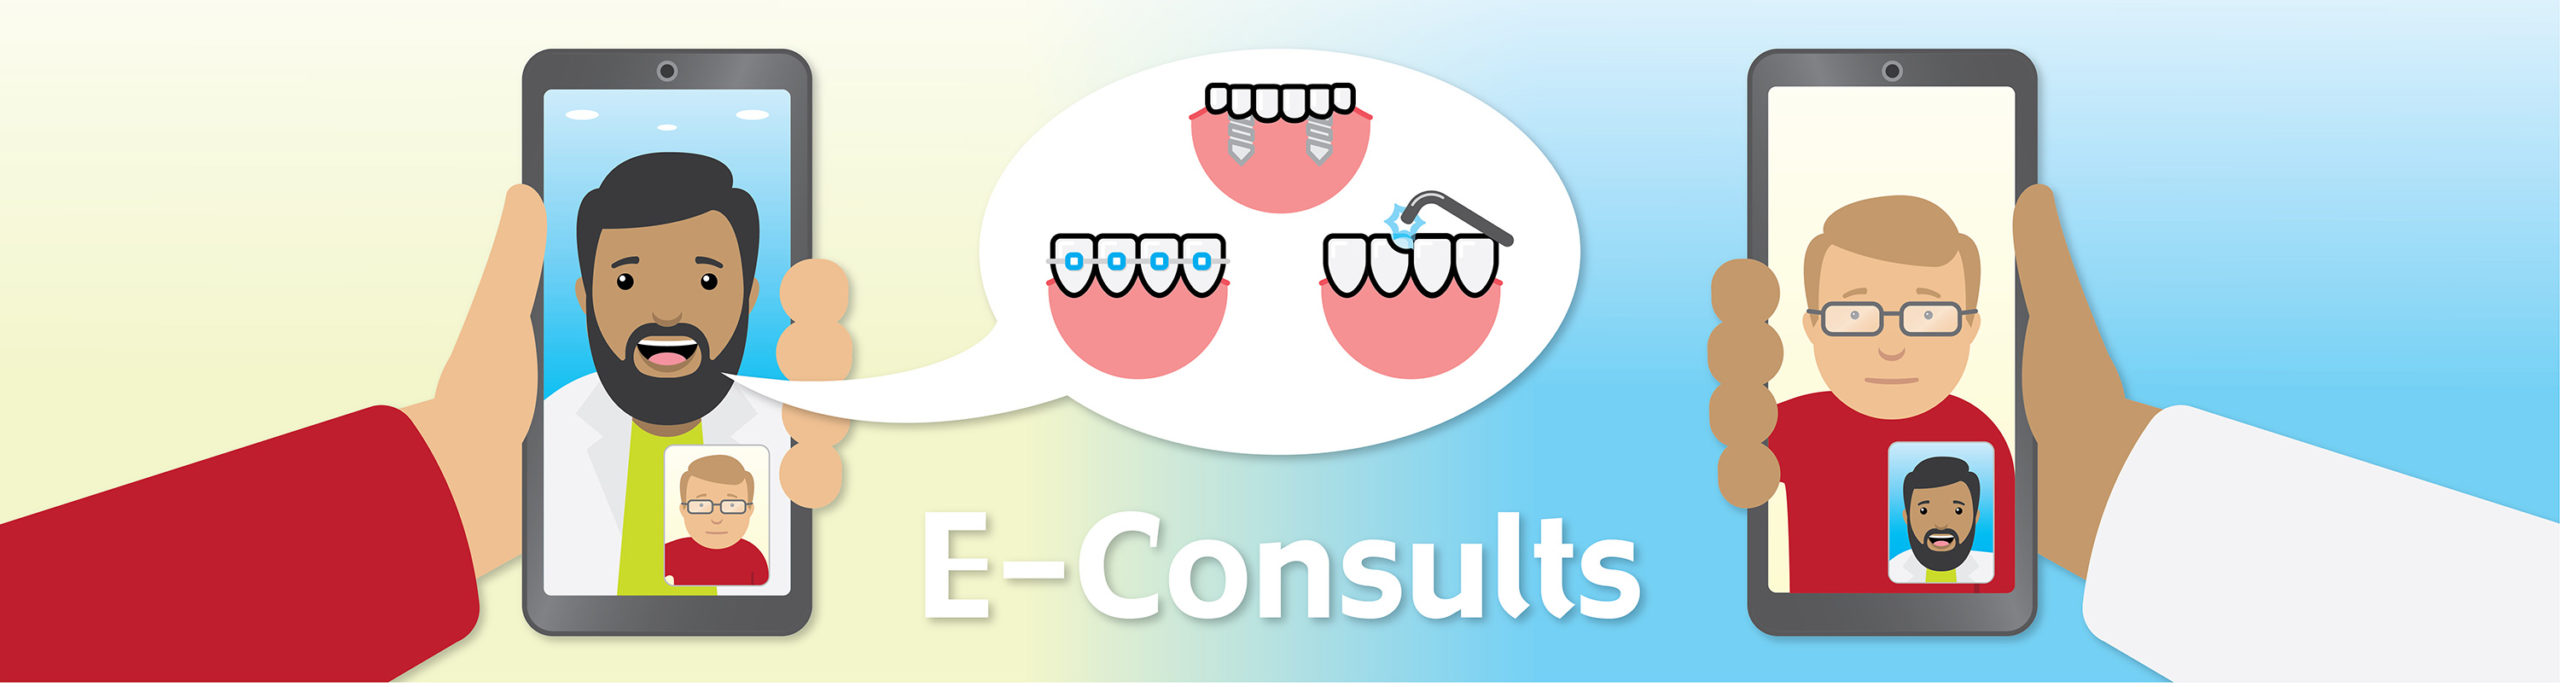 E-Consult Page Banner